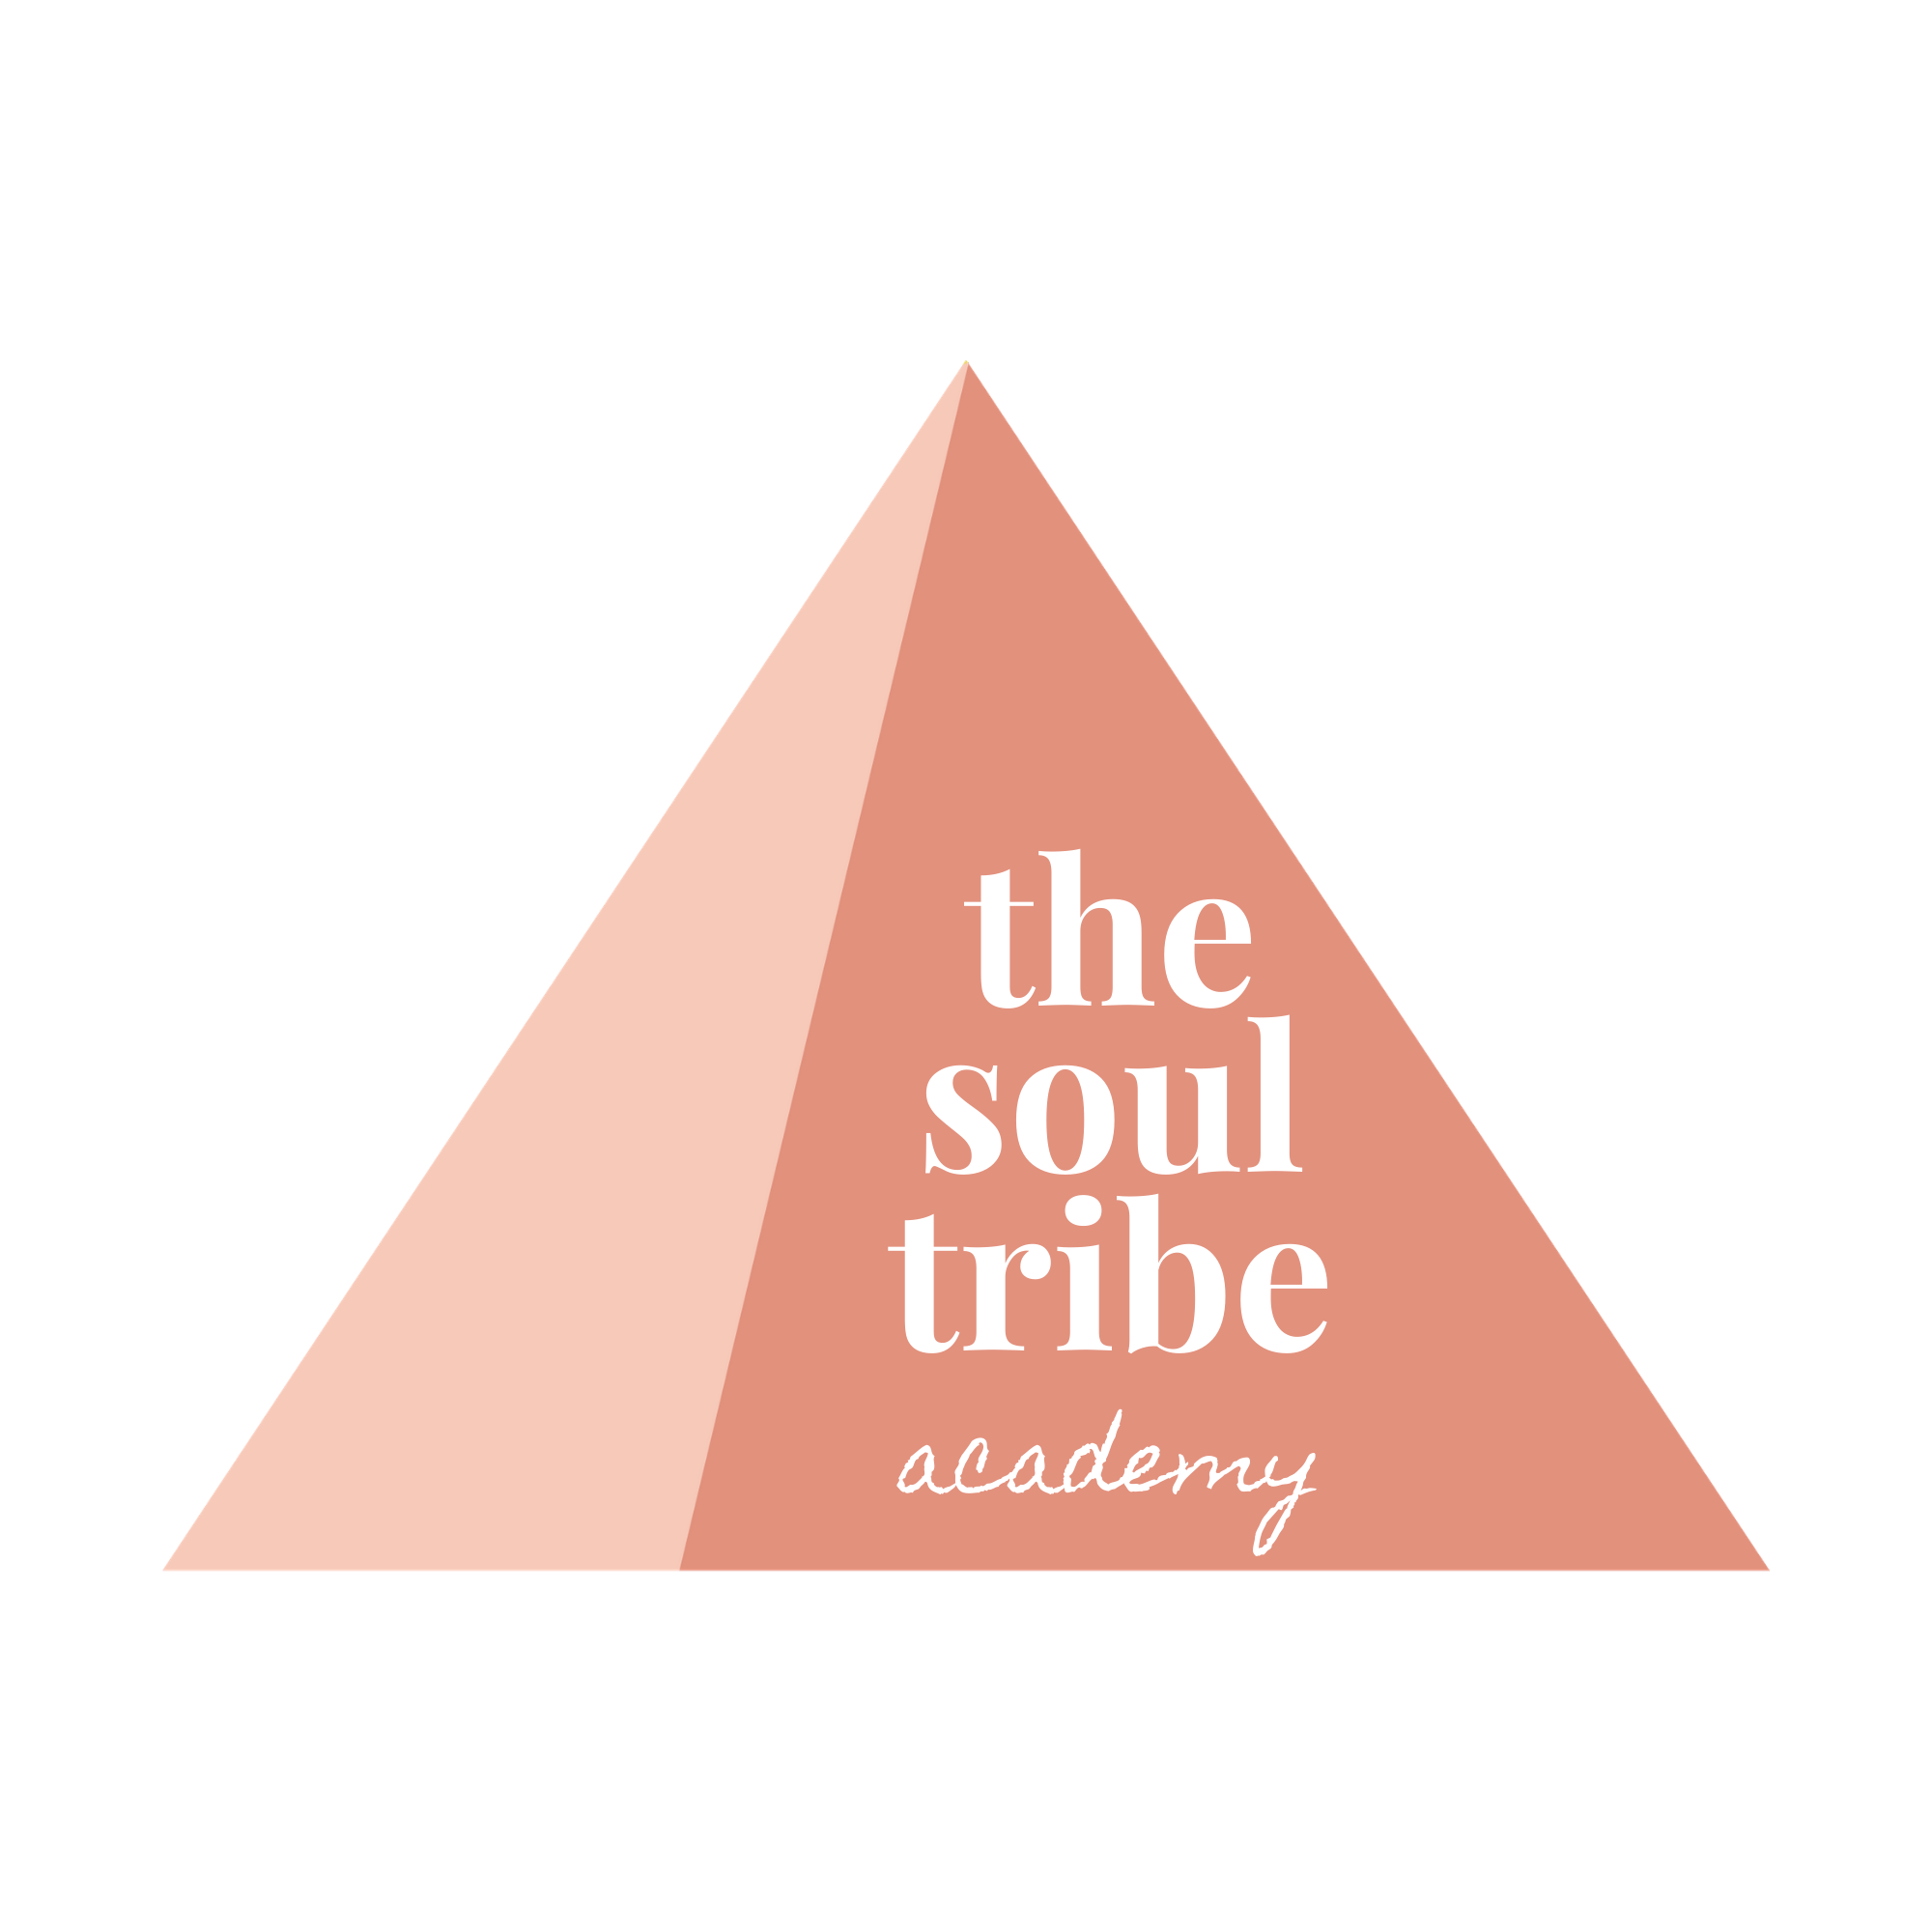 The Soul Tribe Academy